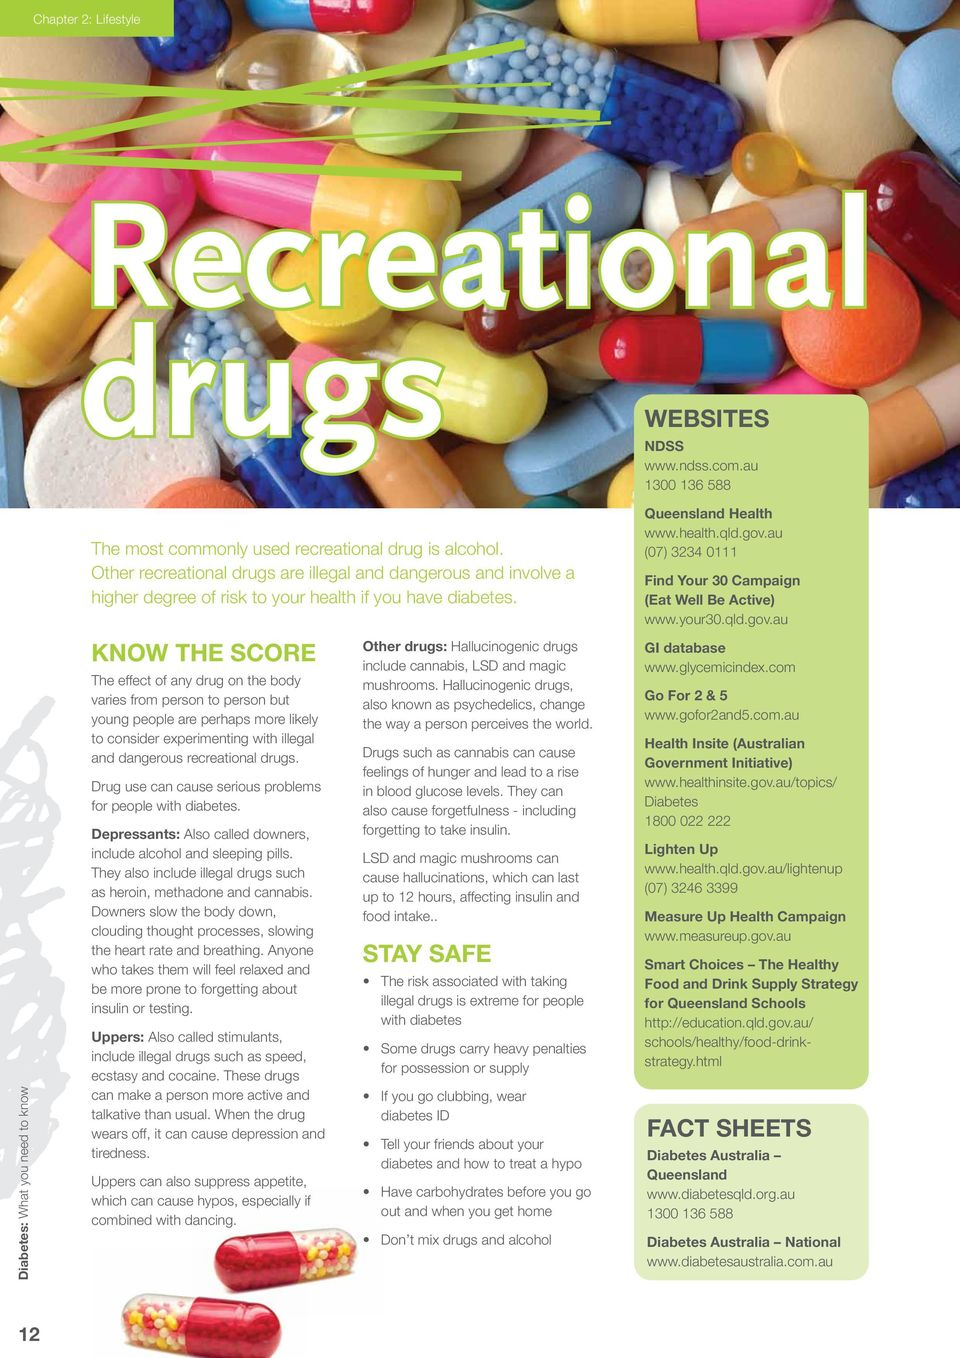 Know the score The effect of any drug on the body varies from person to person but young people are perhaps more likely to consider experimenting with illegal and dangerous recreational drugs.